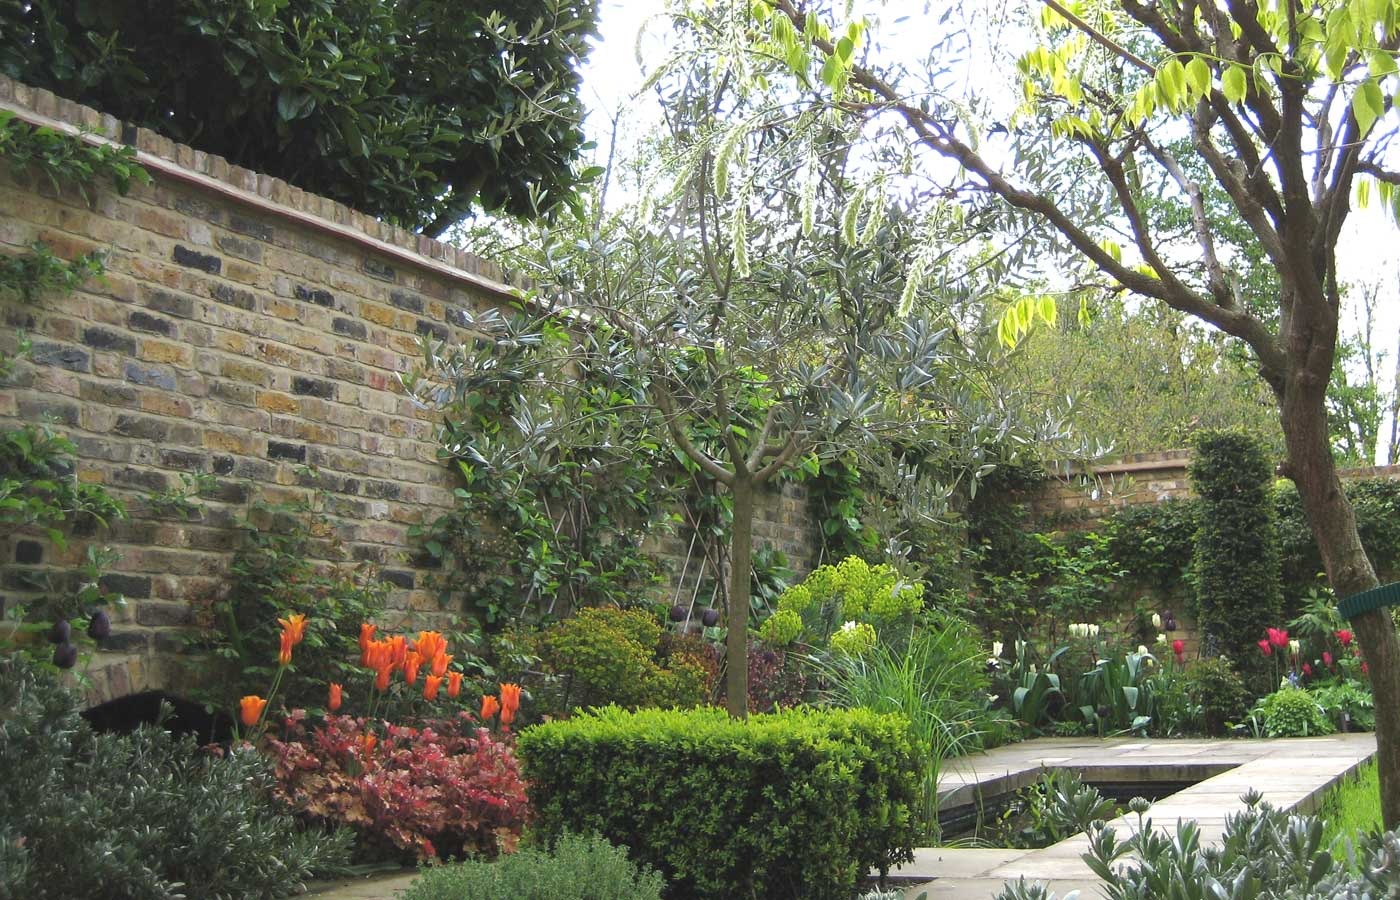 Diana milner garden design beautiful garden designs for Landscape gardeners